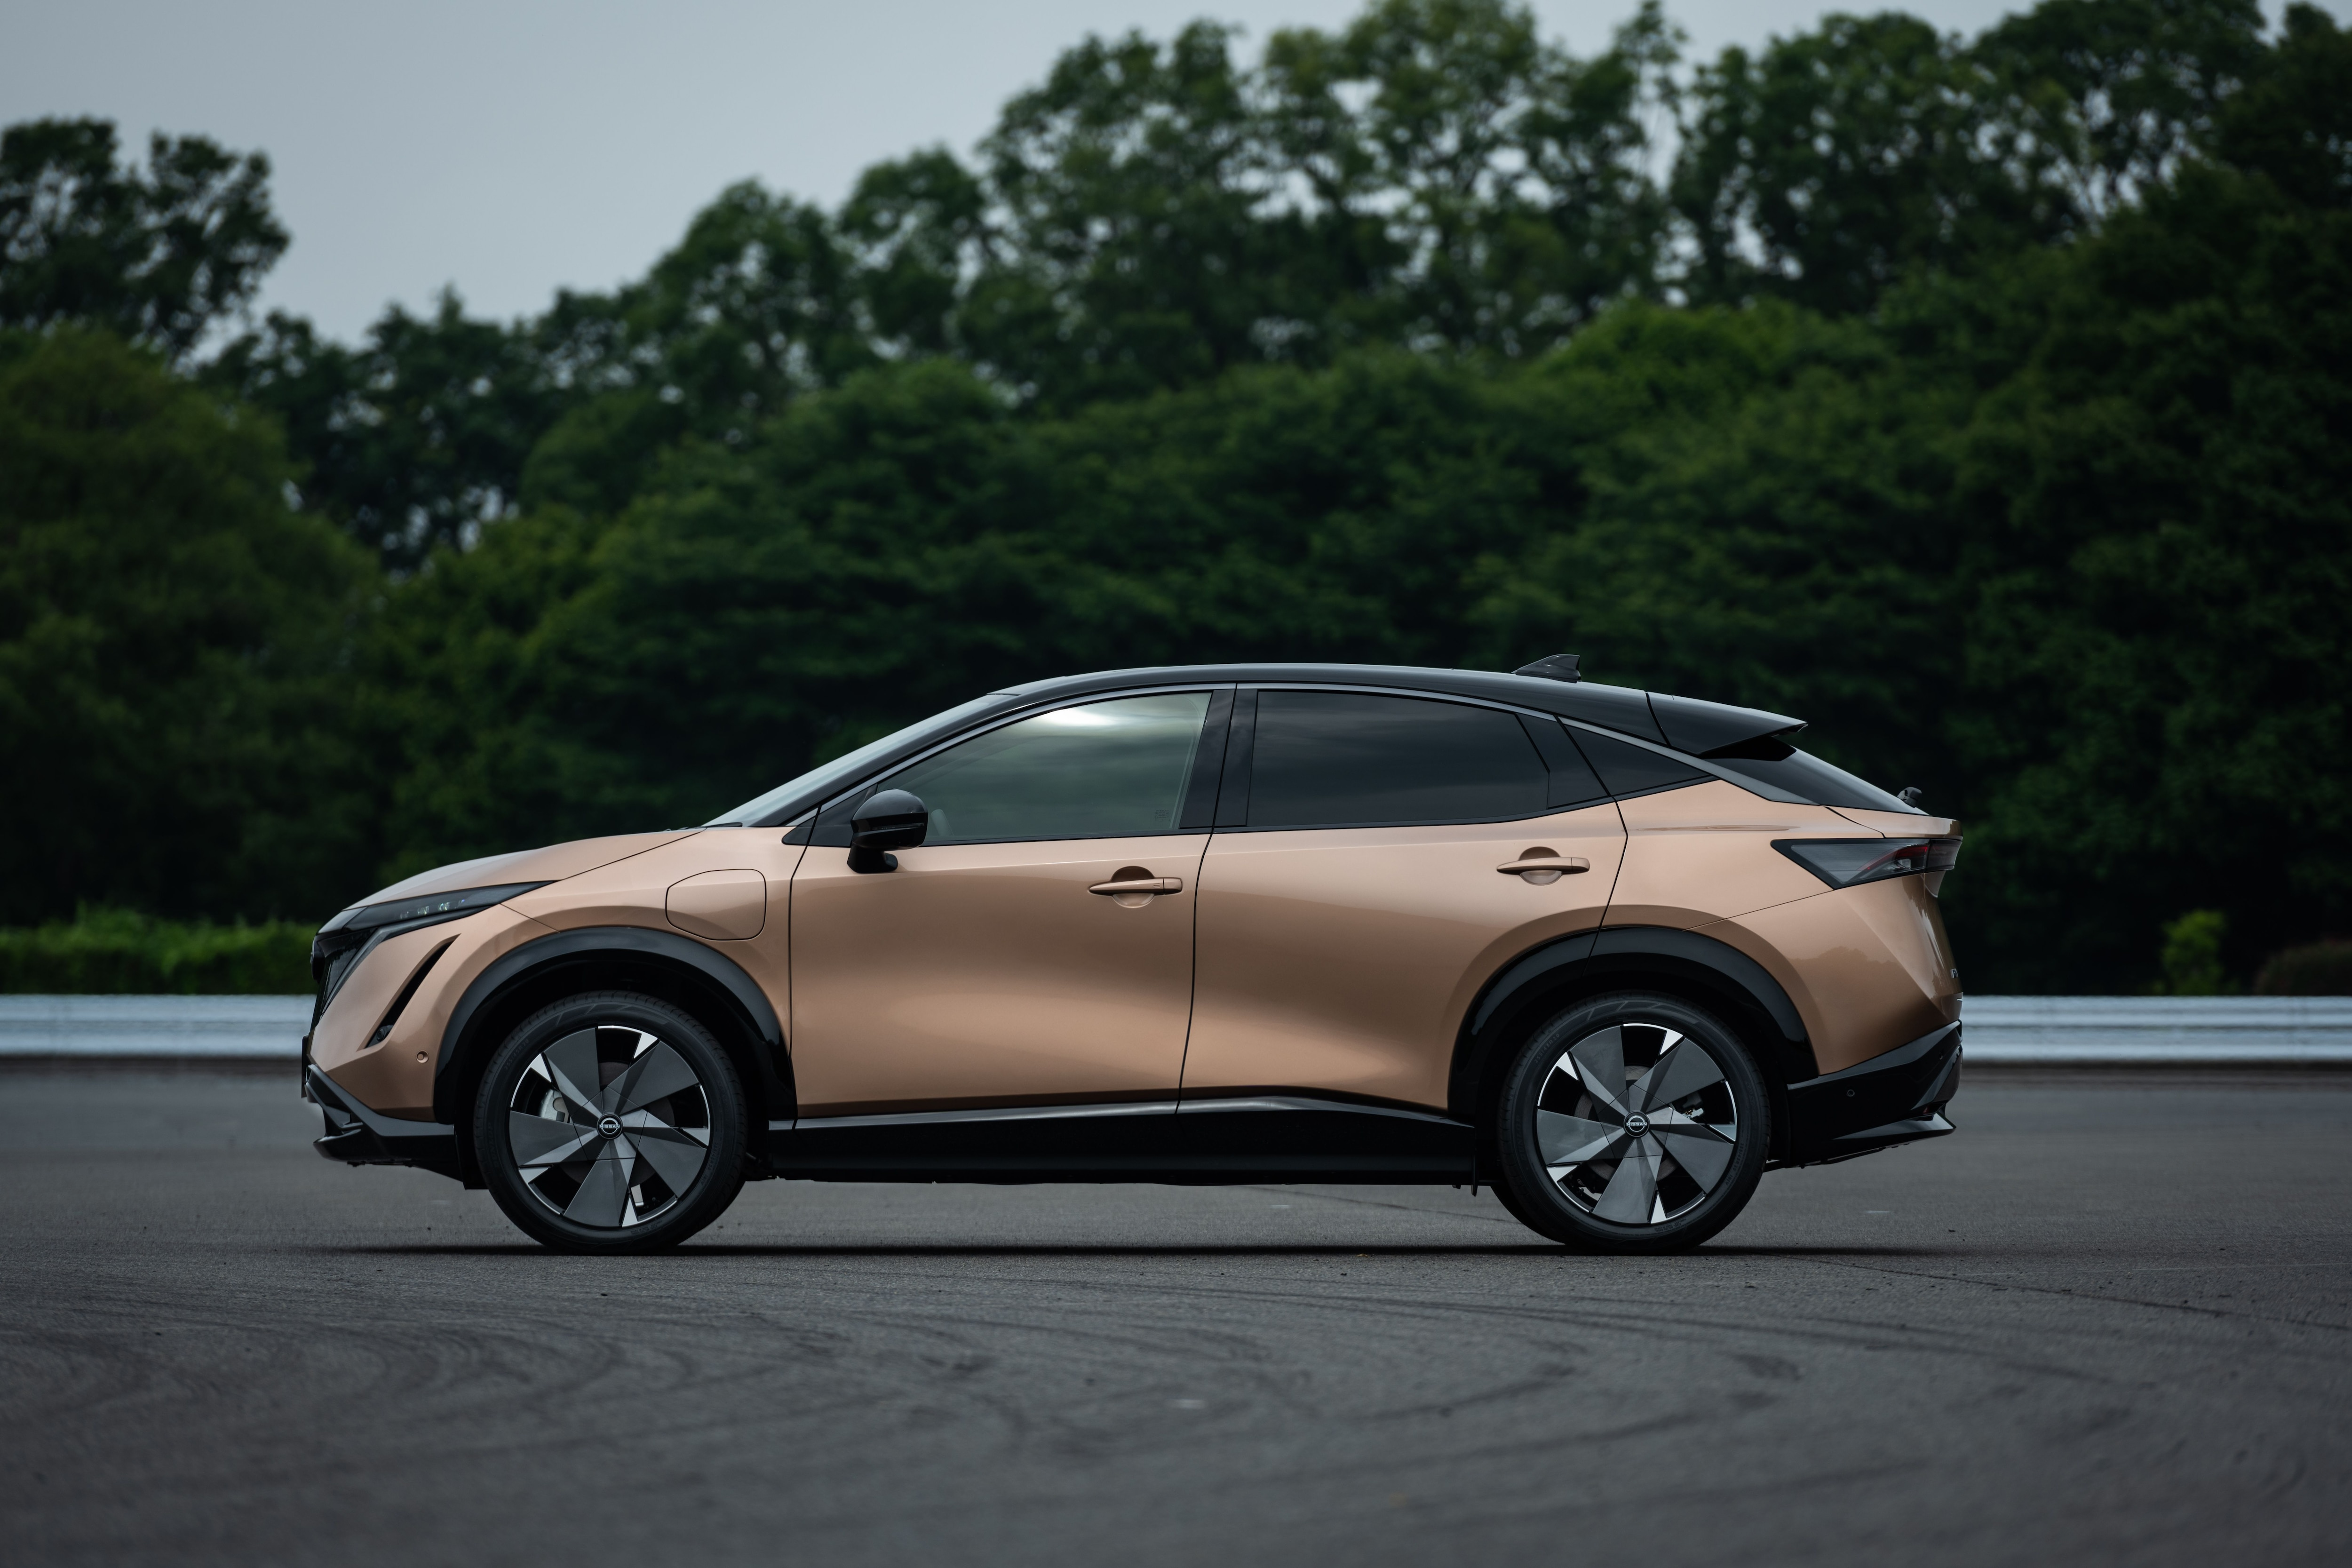 Take A Closer Look Into Nissan S New Ariya Electric Suv The Globe And Mail